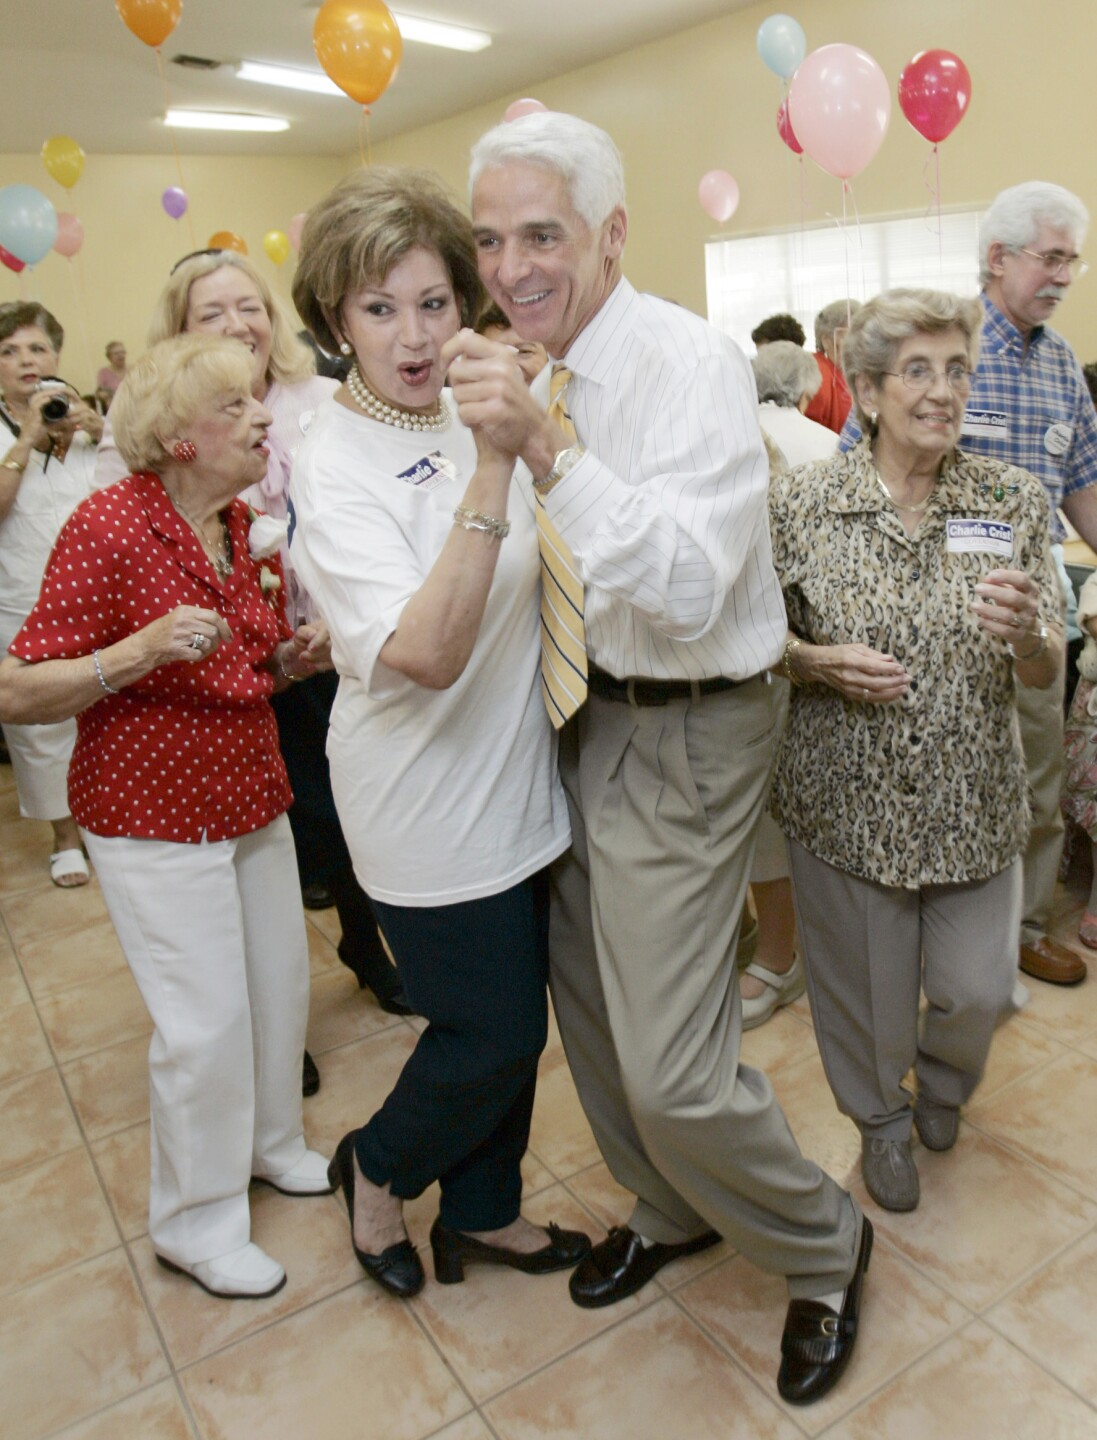 Charlie Crist dances with Daisy Oliveros in 2006